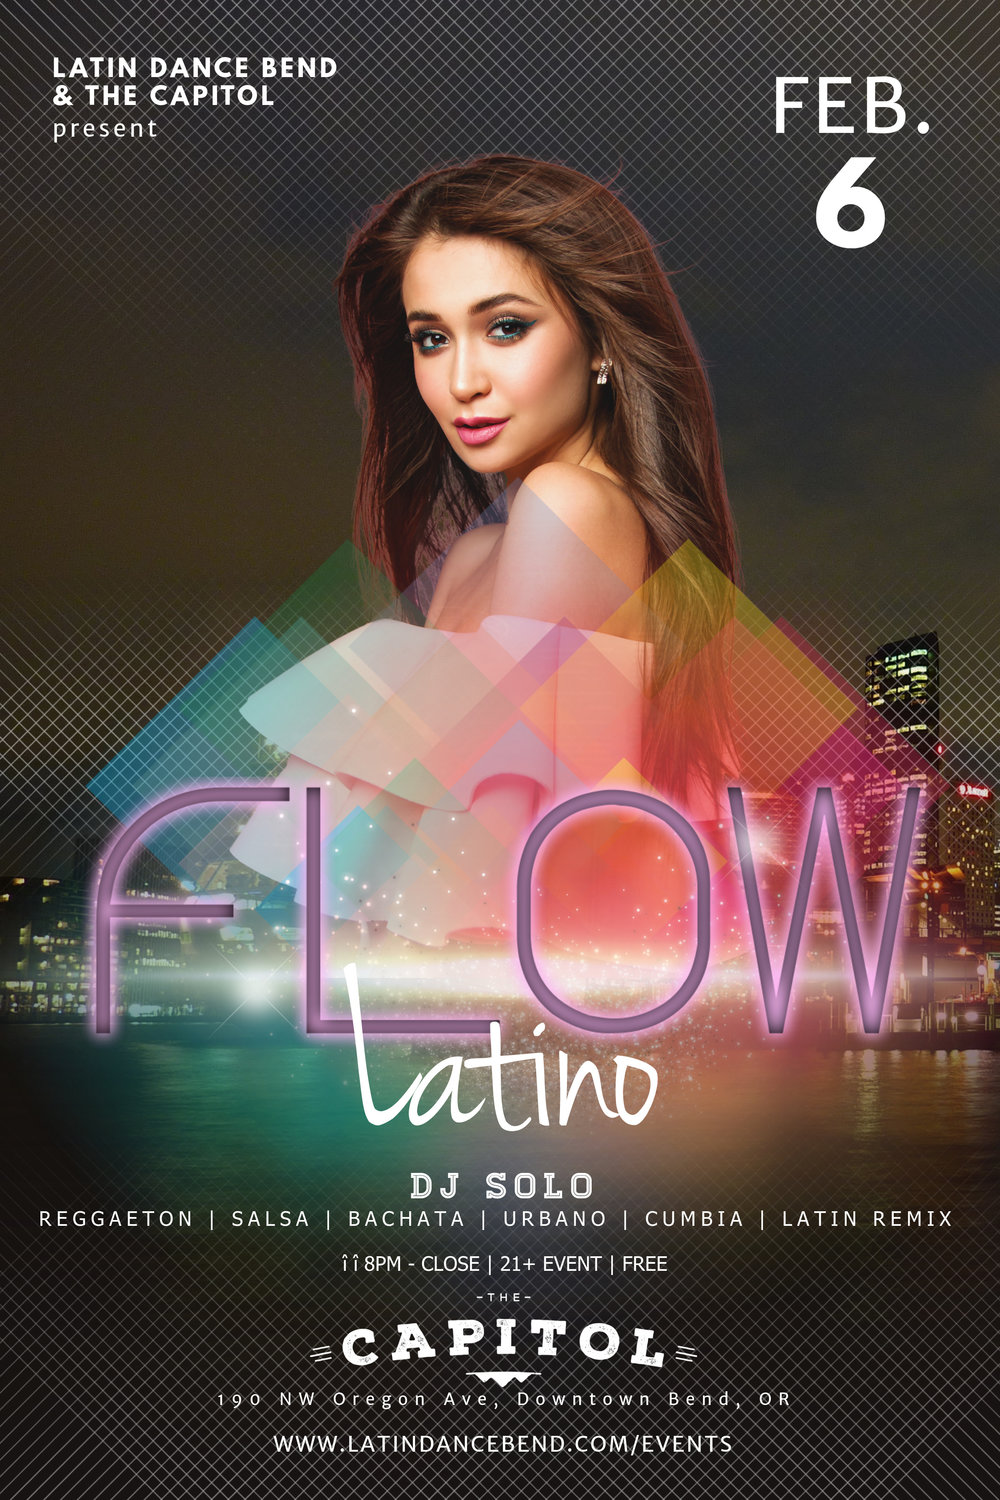 FLOW Latino-Feb6-The Capitol.jpg